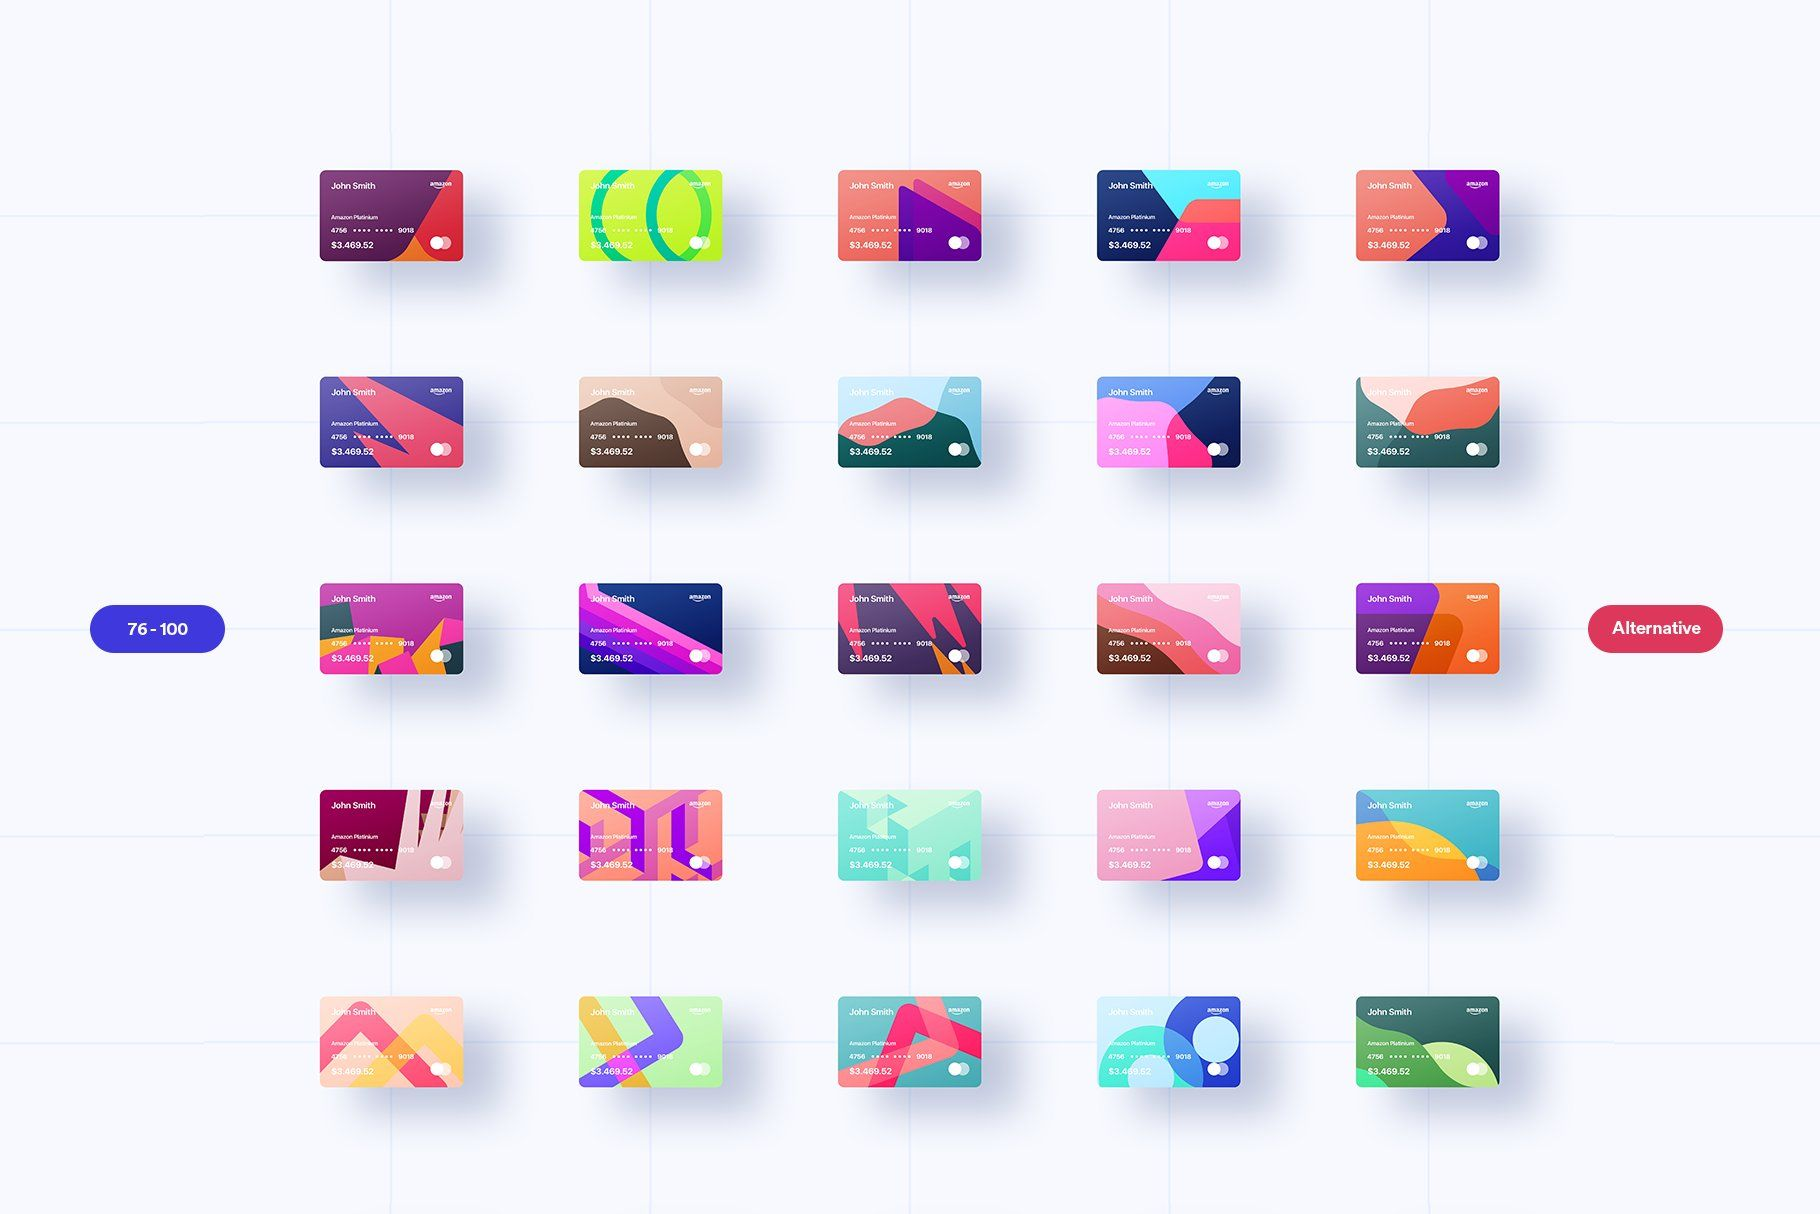 100 Financial Virtual Design Cards , ad, Features